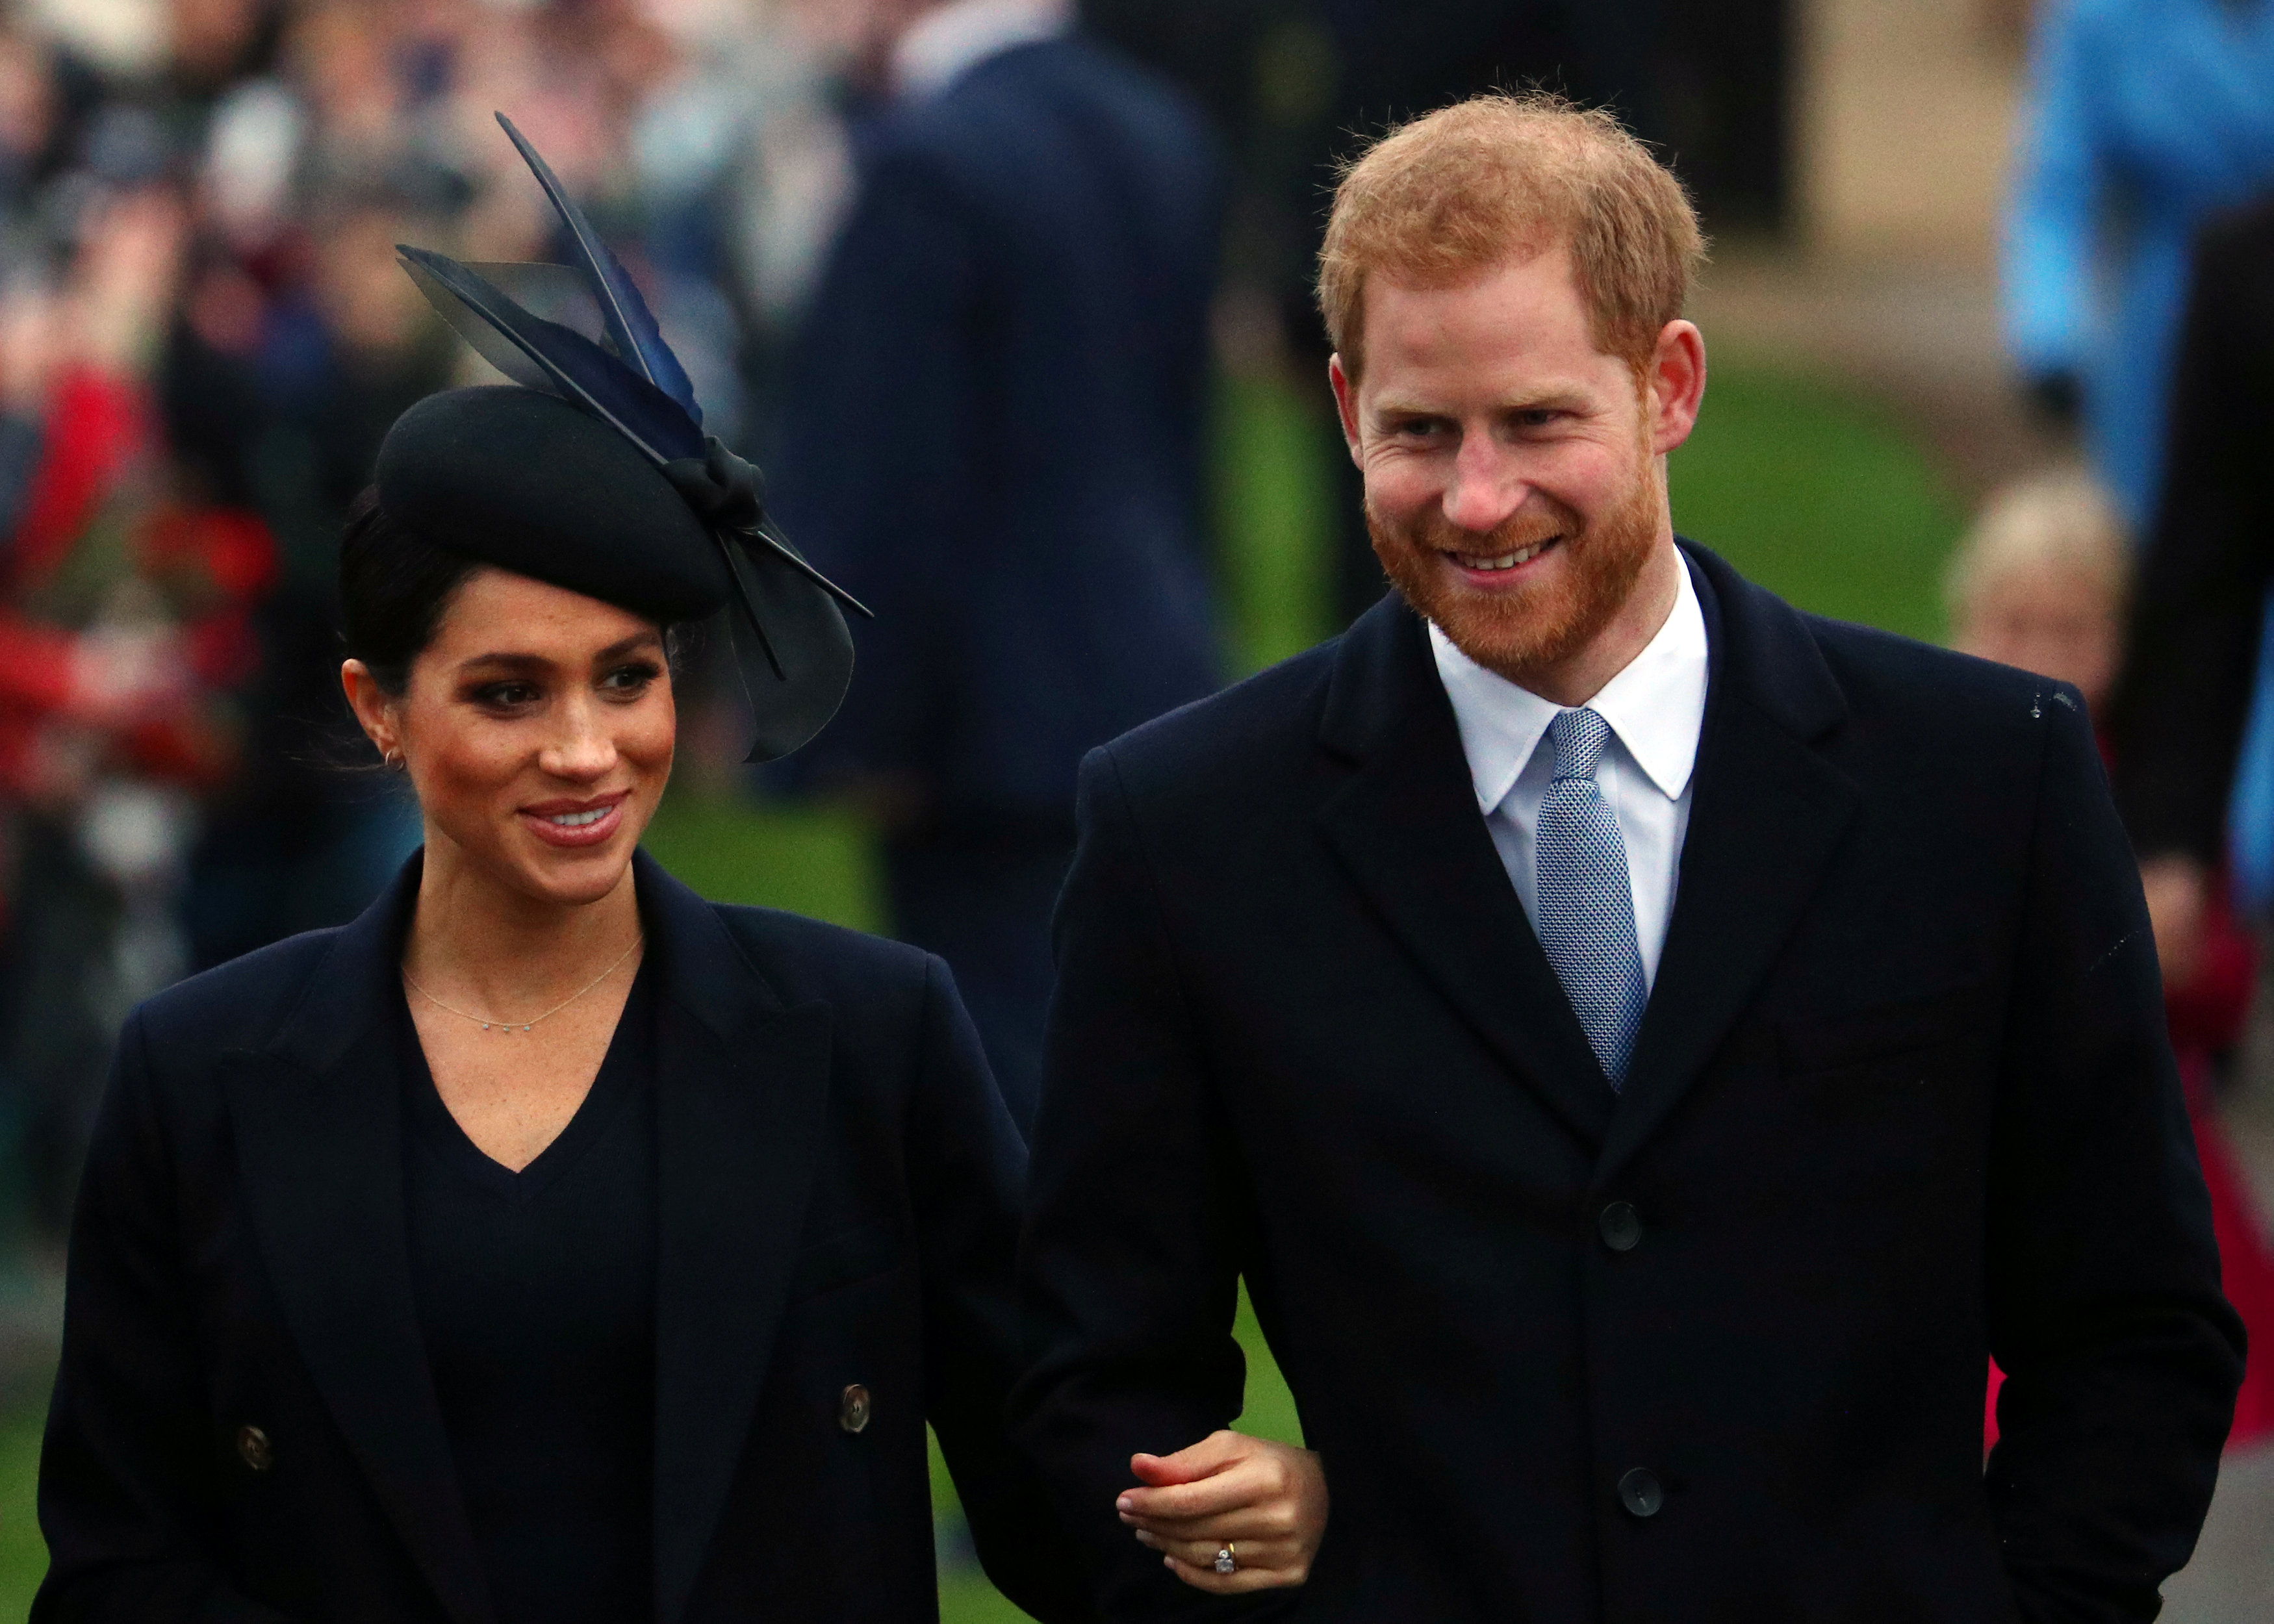 Britain's Prince Harry, Duke of Sussex and Meghan, Duchess of Sussex arrive at St Mary Magdalene's church for the Royal Family's Christmas Day service on the Sandringham estate in eastern England